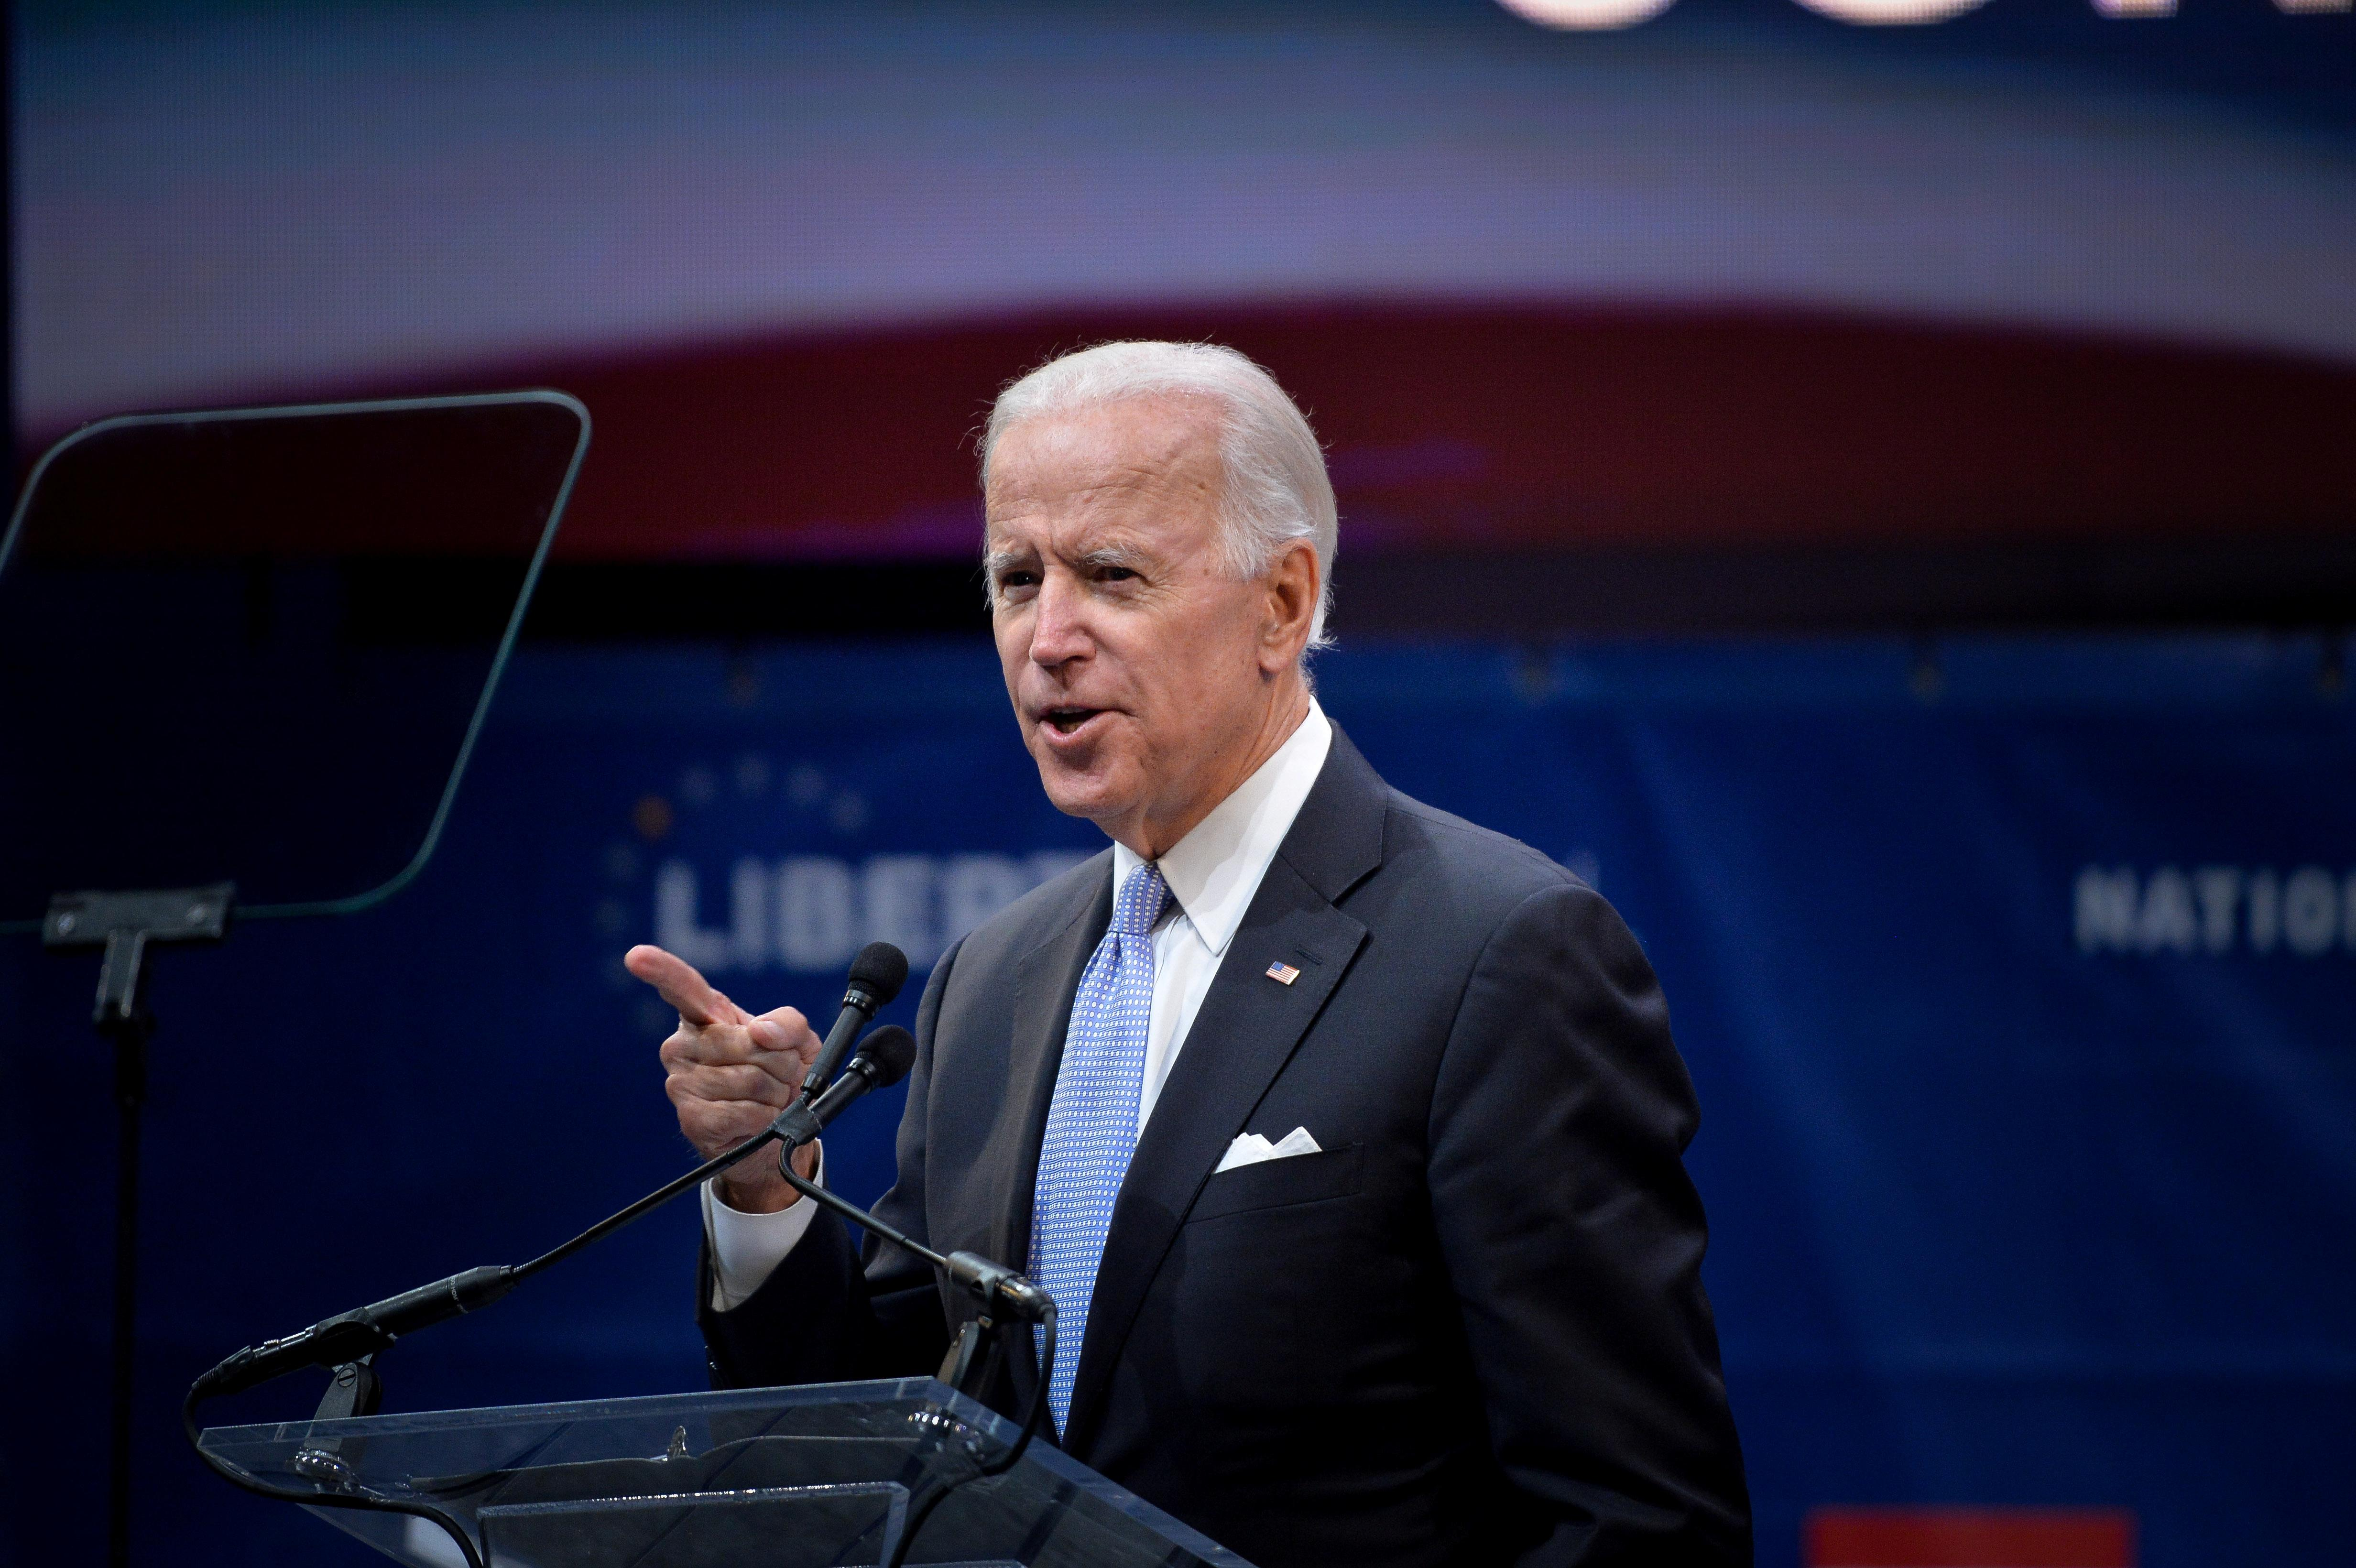 Joe Biden Would 'Win Overwhelmingly' Against Trump in 2020, Former DNC Chair Ed Rendell Says